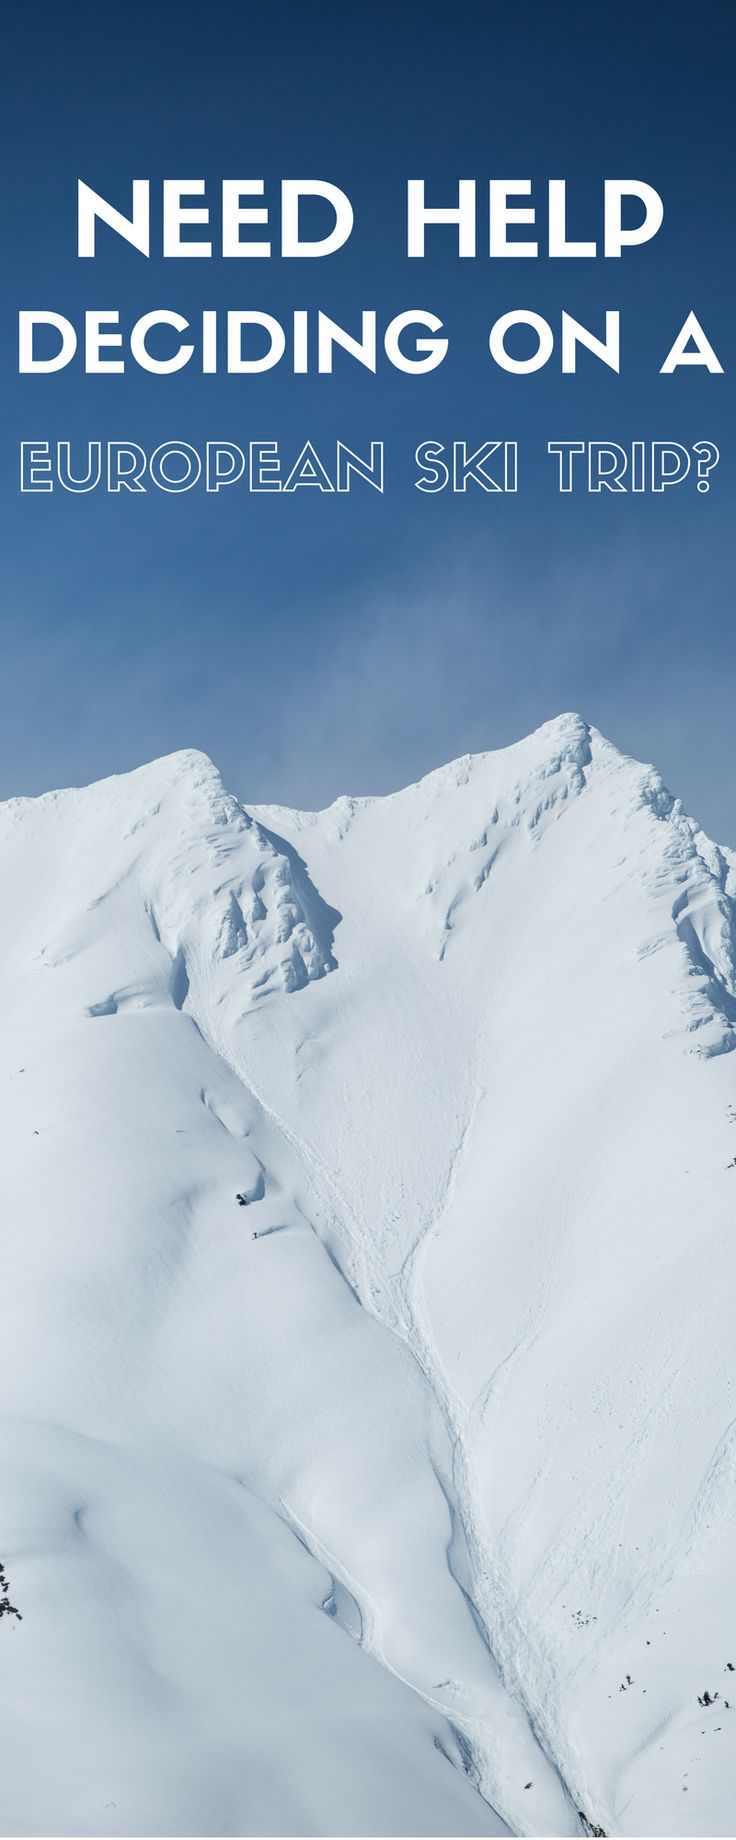 Need help deciding on a ski resort in Europe?